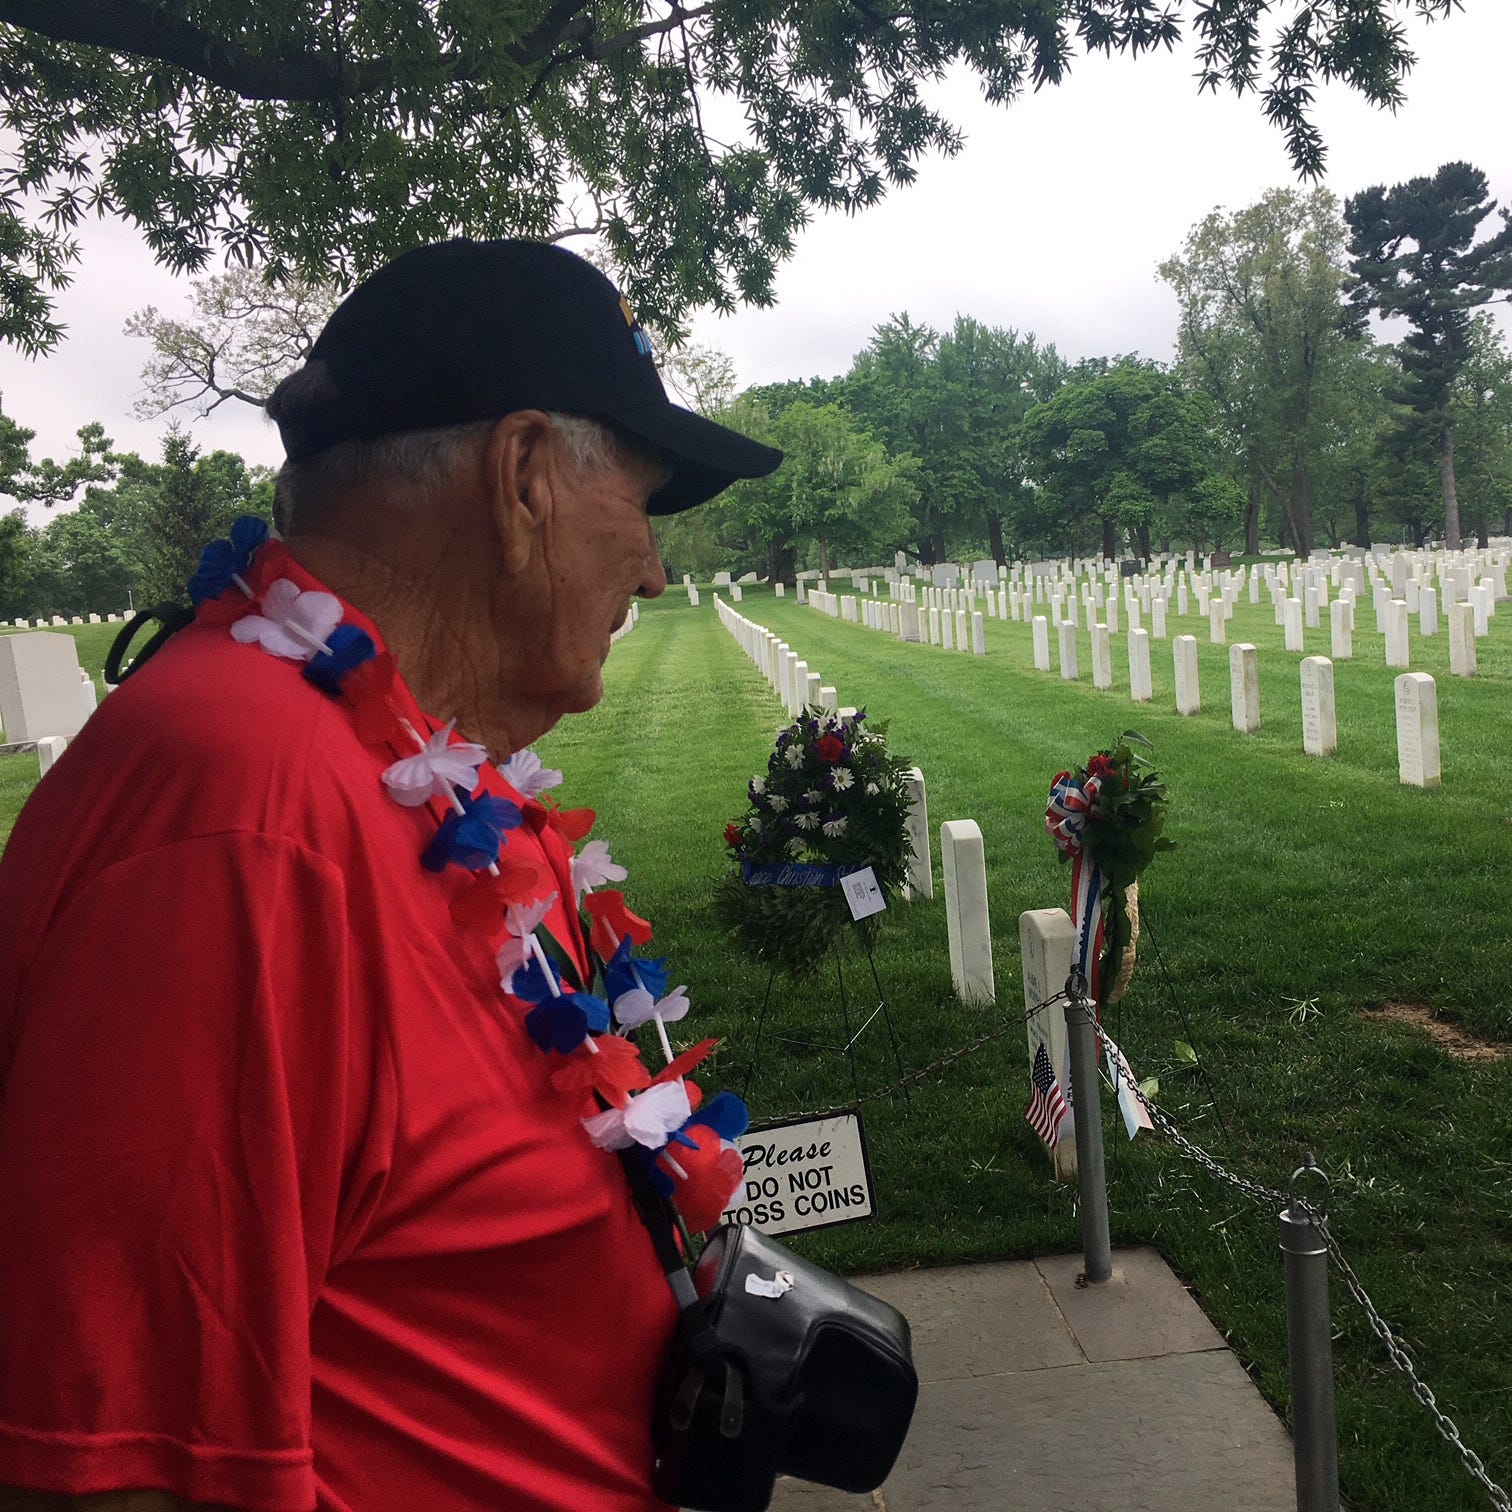 Putting the honor in Honor Flight: Veterans greeted and feted to D.C. and back